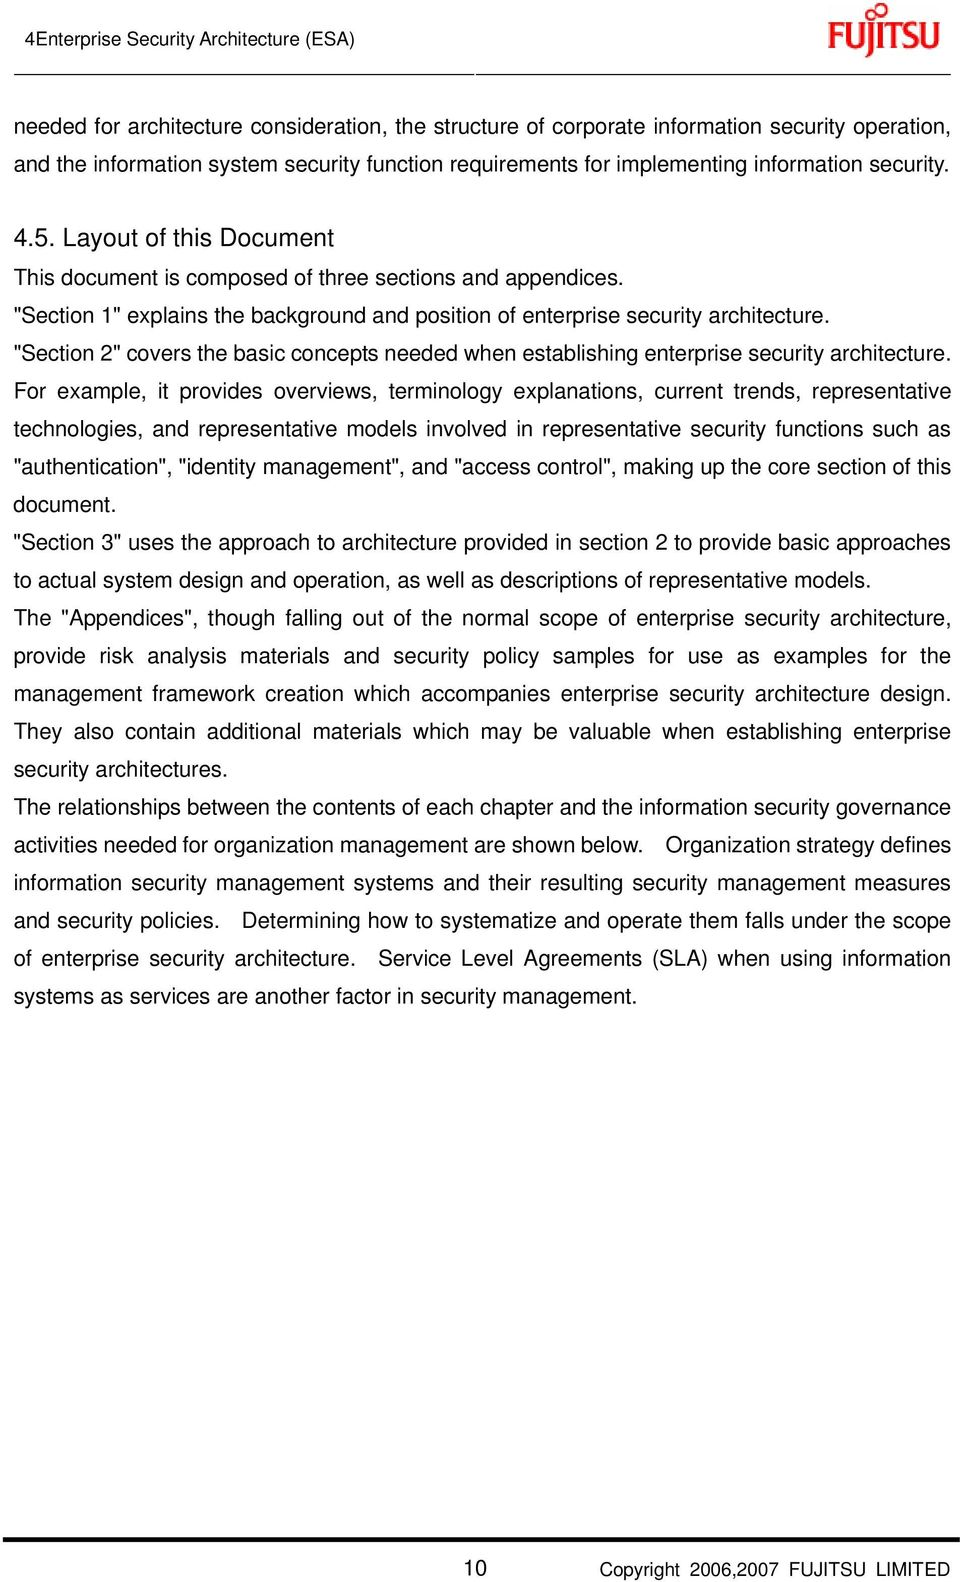 """Section 1"" explains the background and position of enterprise security architecture. ""Section 2"" covers the basic concepts needed when establishing enterprise security architecture."